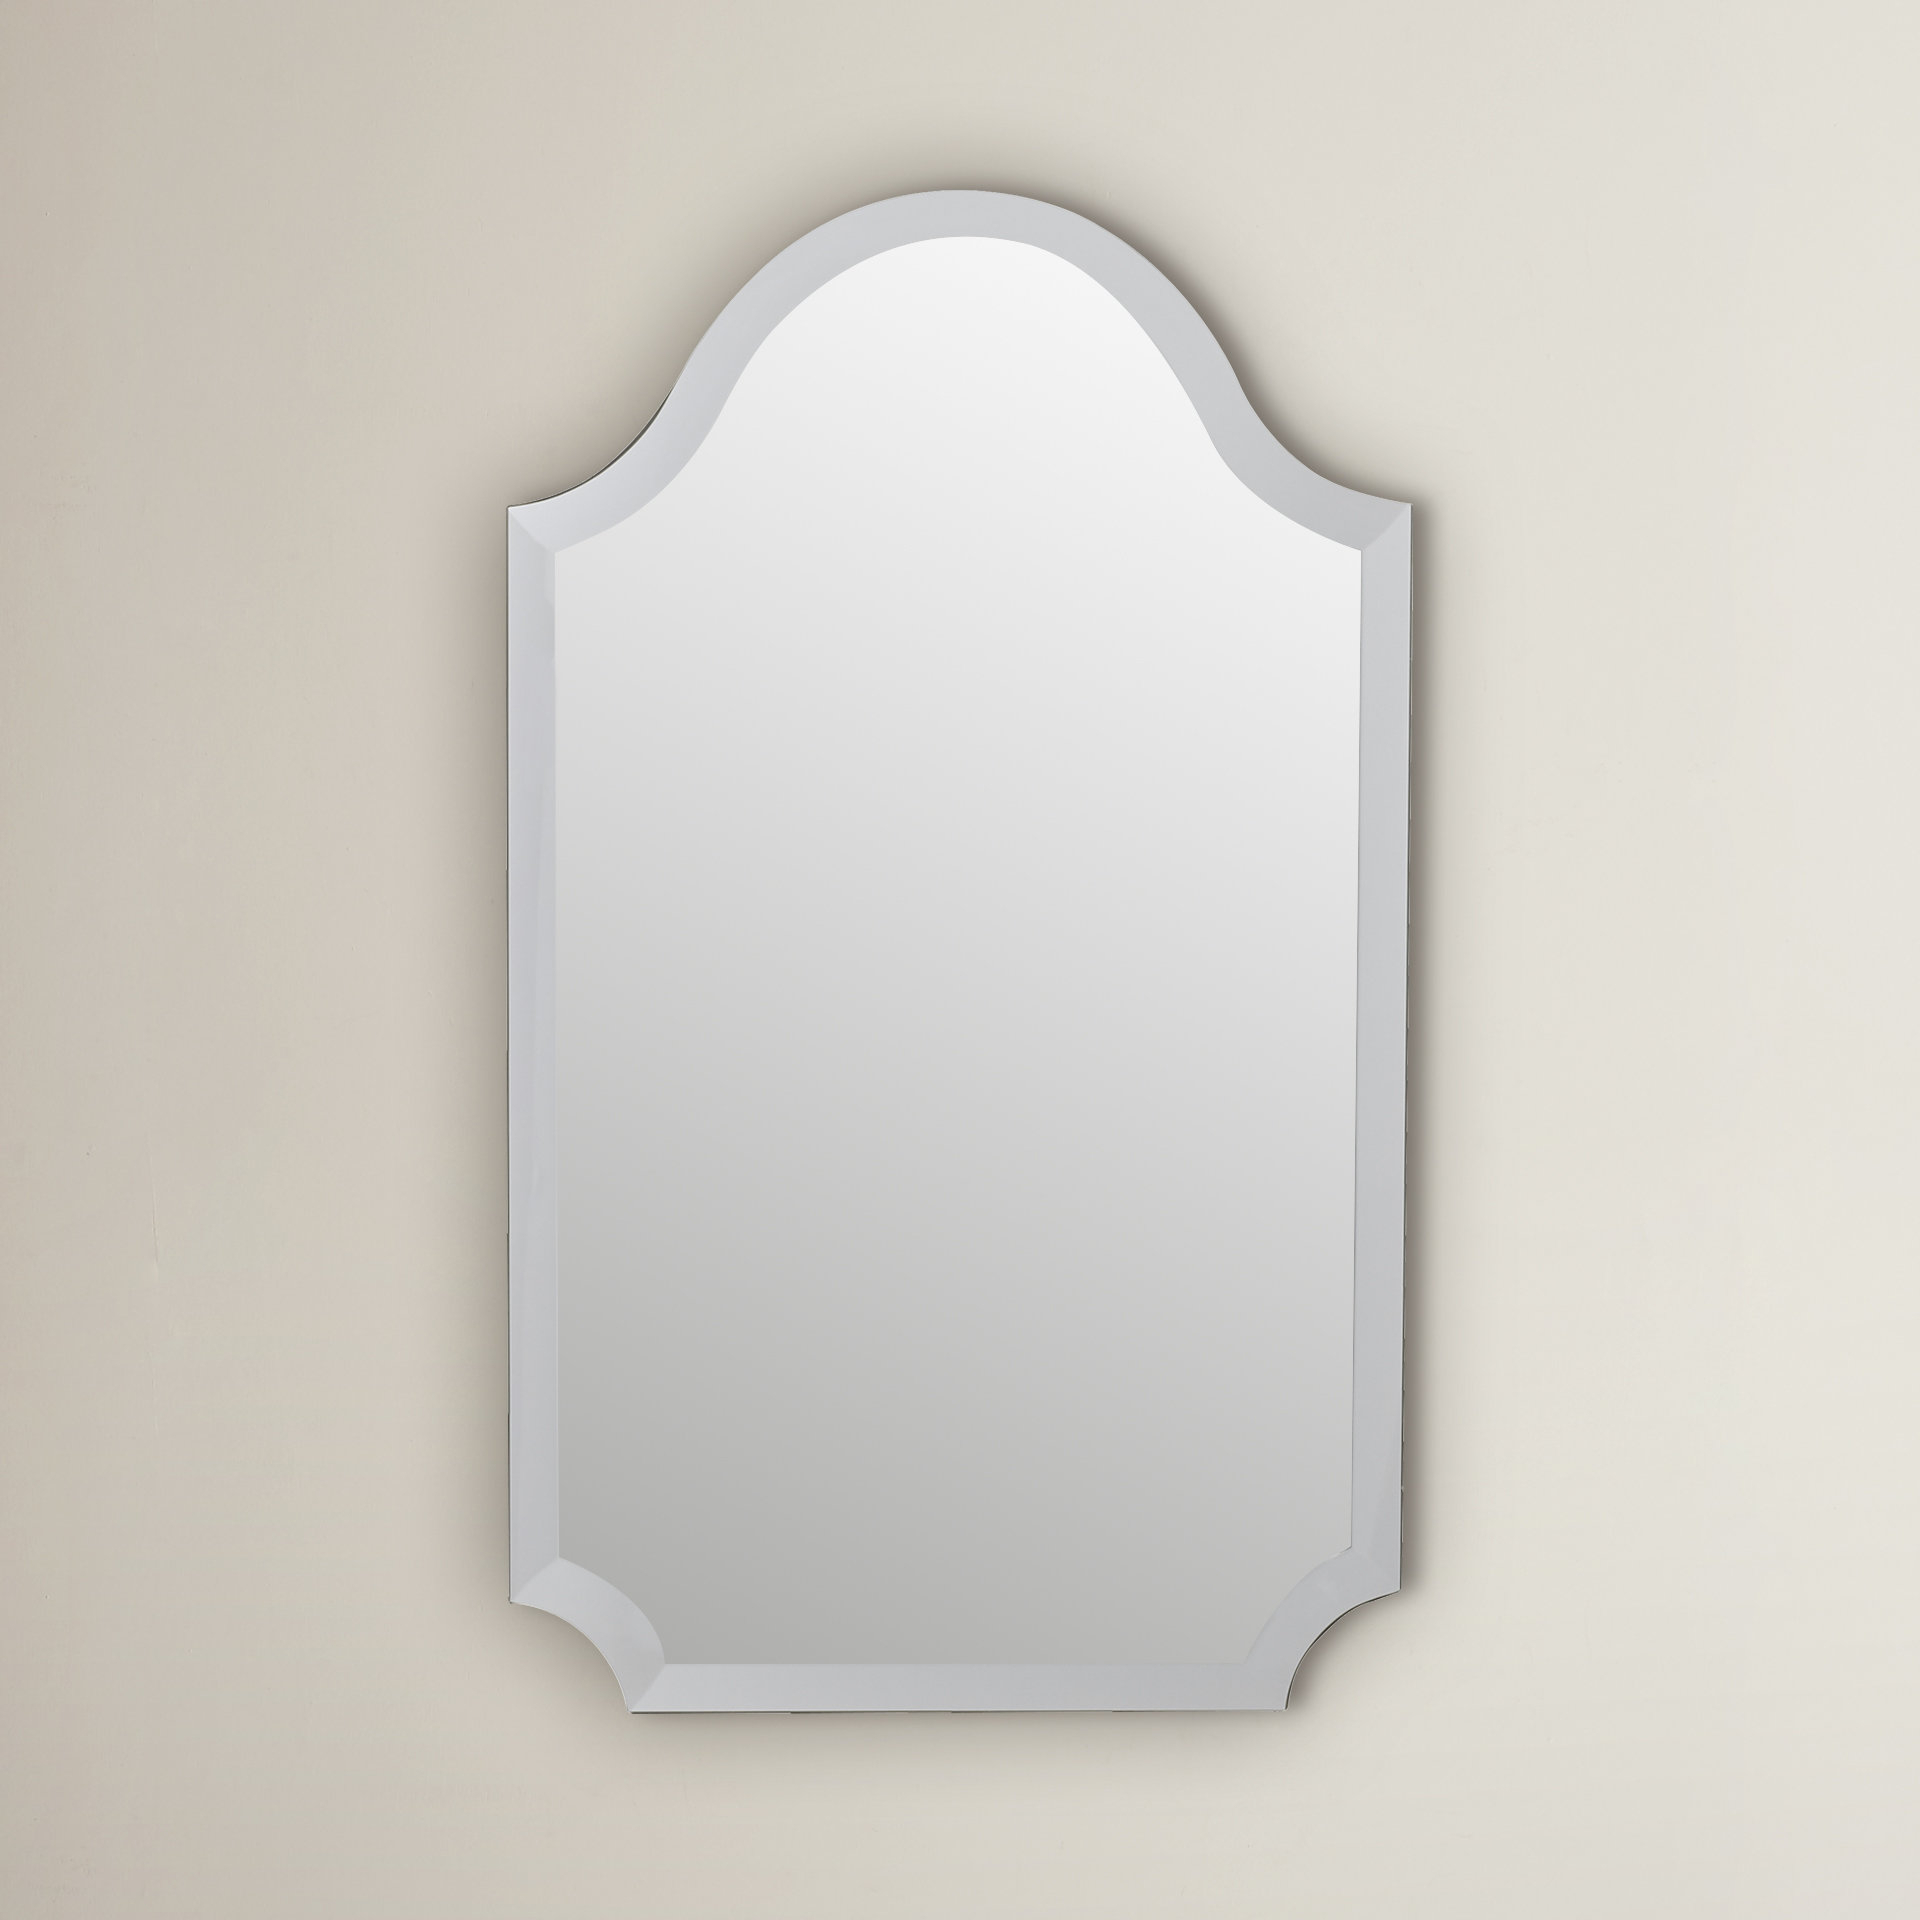 Willa Arlo Interiors Dariel Tall Arched Scalloped Wall Mirror for Dariel Tall Arched Scalloped Wall Mirrors (Image 28 of 30)